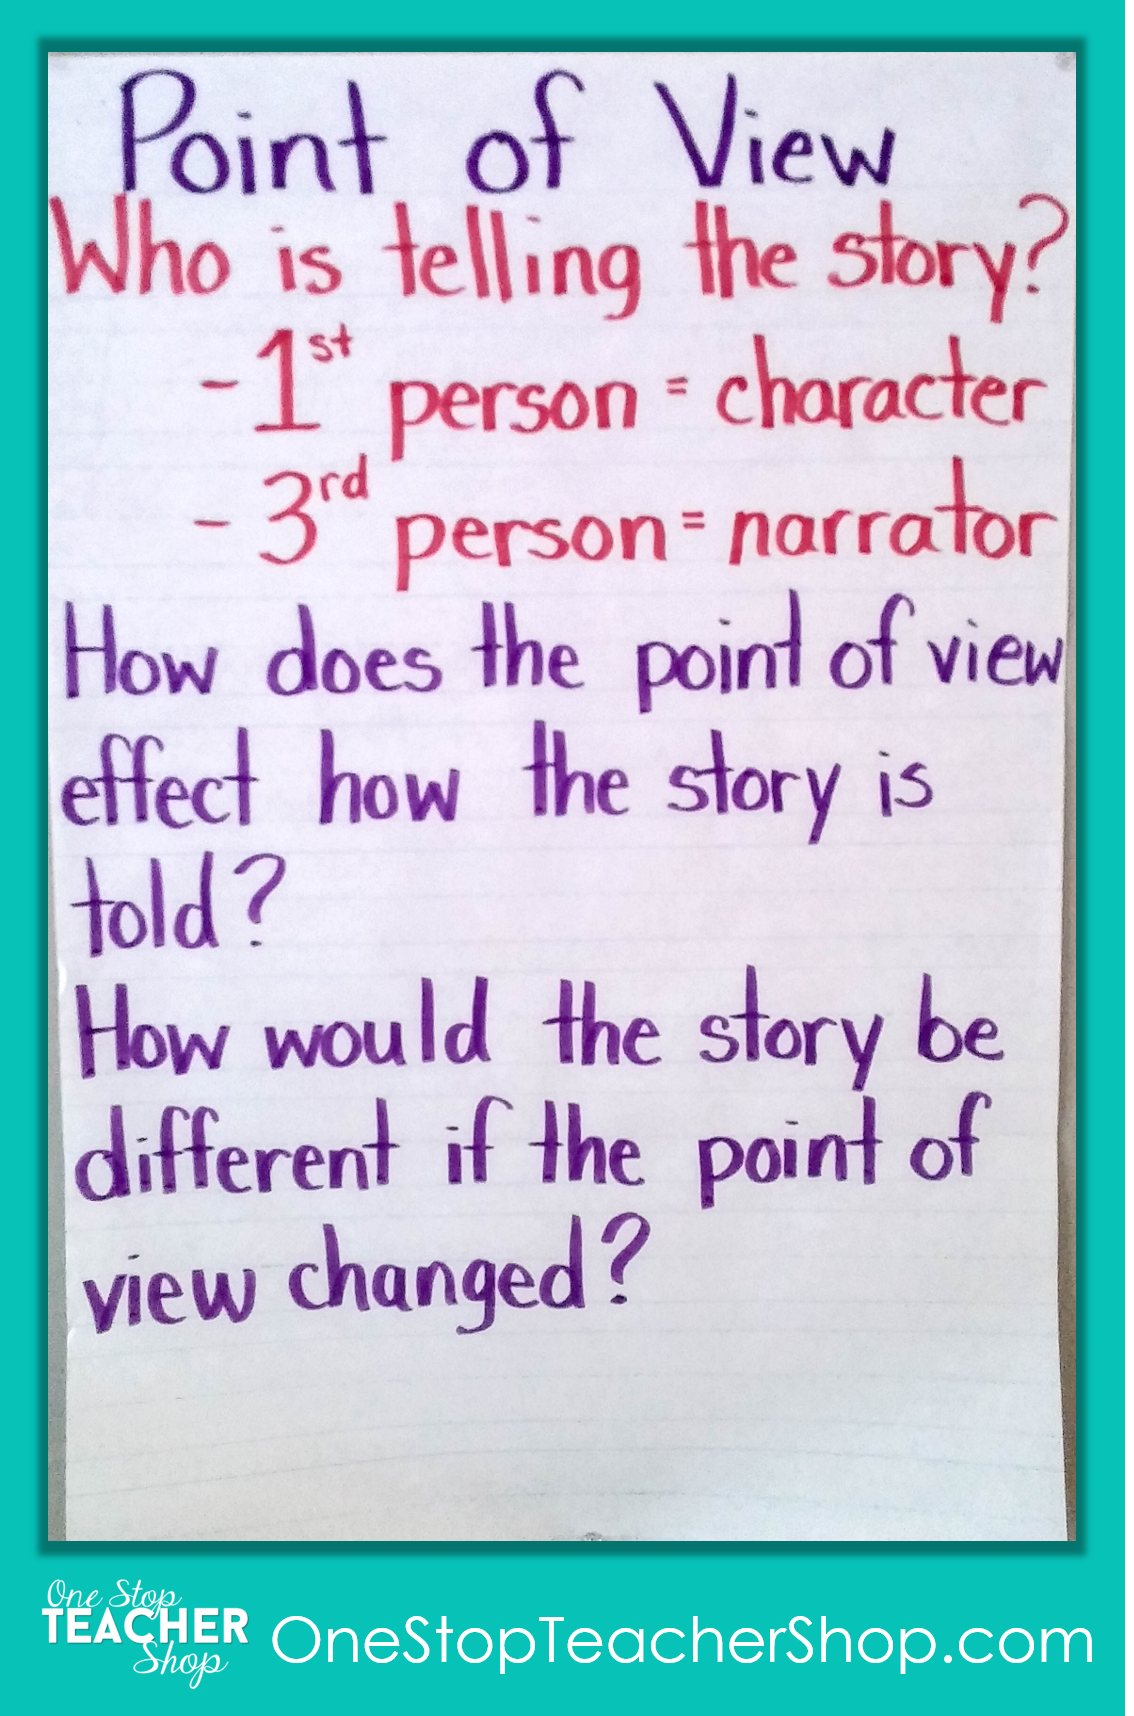 Point of View Anchor Chart - Check out my collection of anchor charts for math, reading, writing, and grammar. I love anchor charts even though I'm not so great at making them! Also, get some tips for using anchor charts effectively in your classroom.